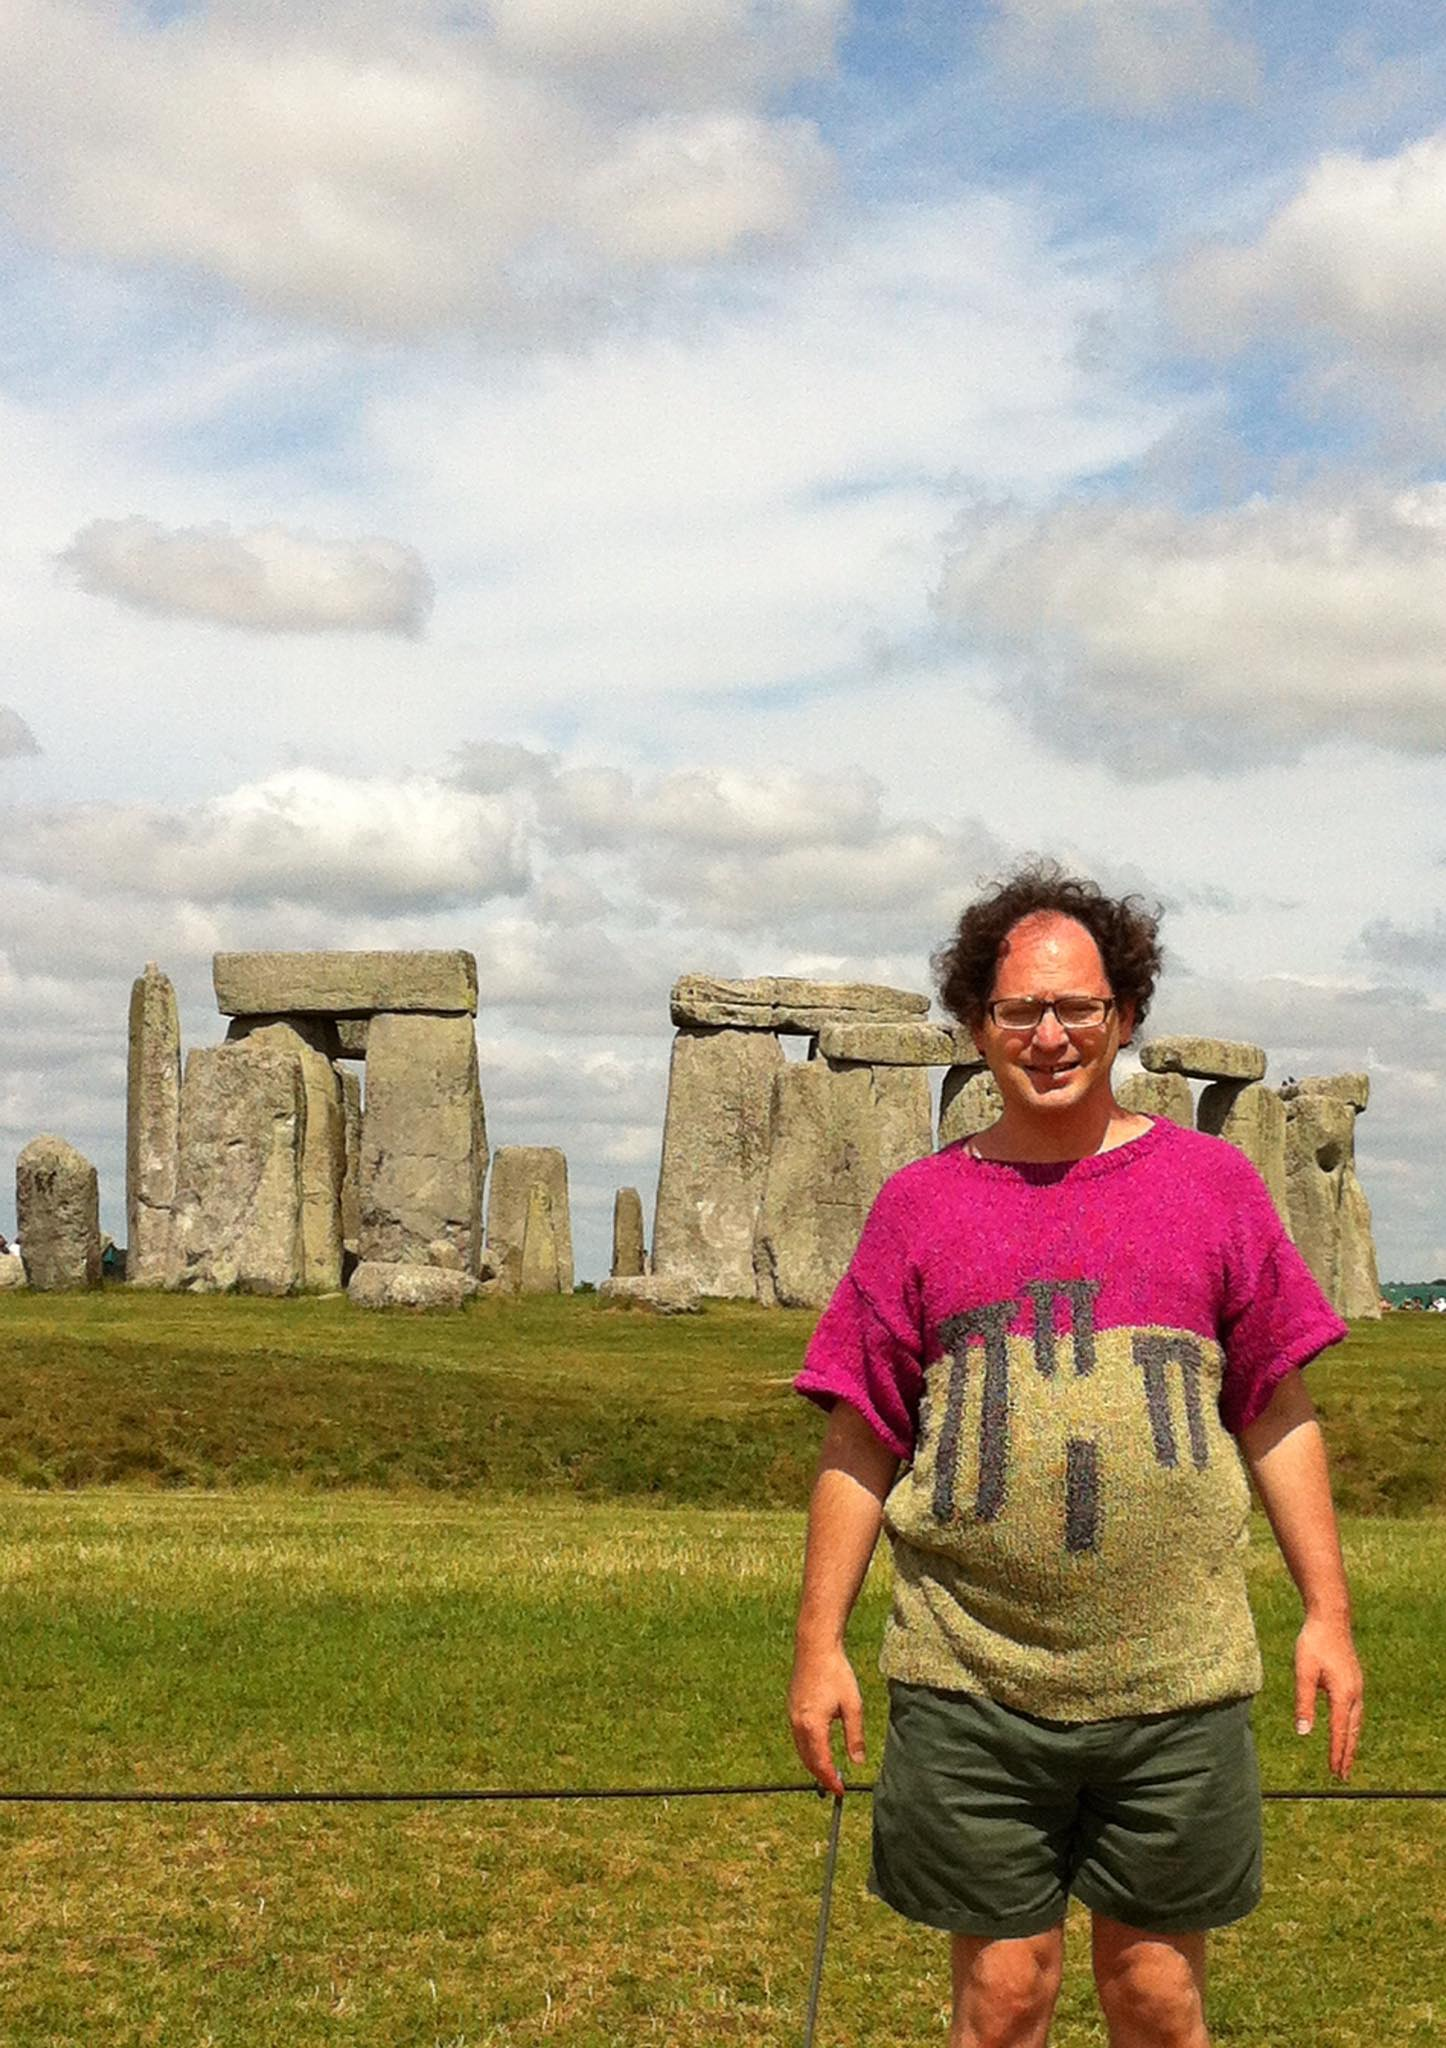 Sweaterhenge: the 8th wonder of the world.